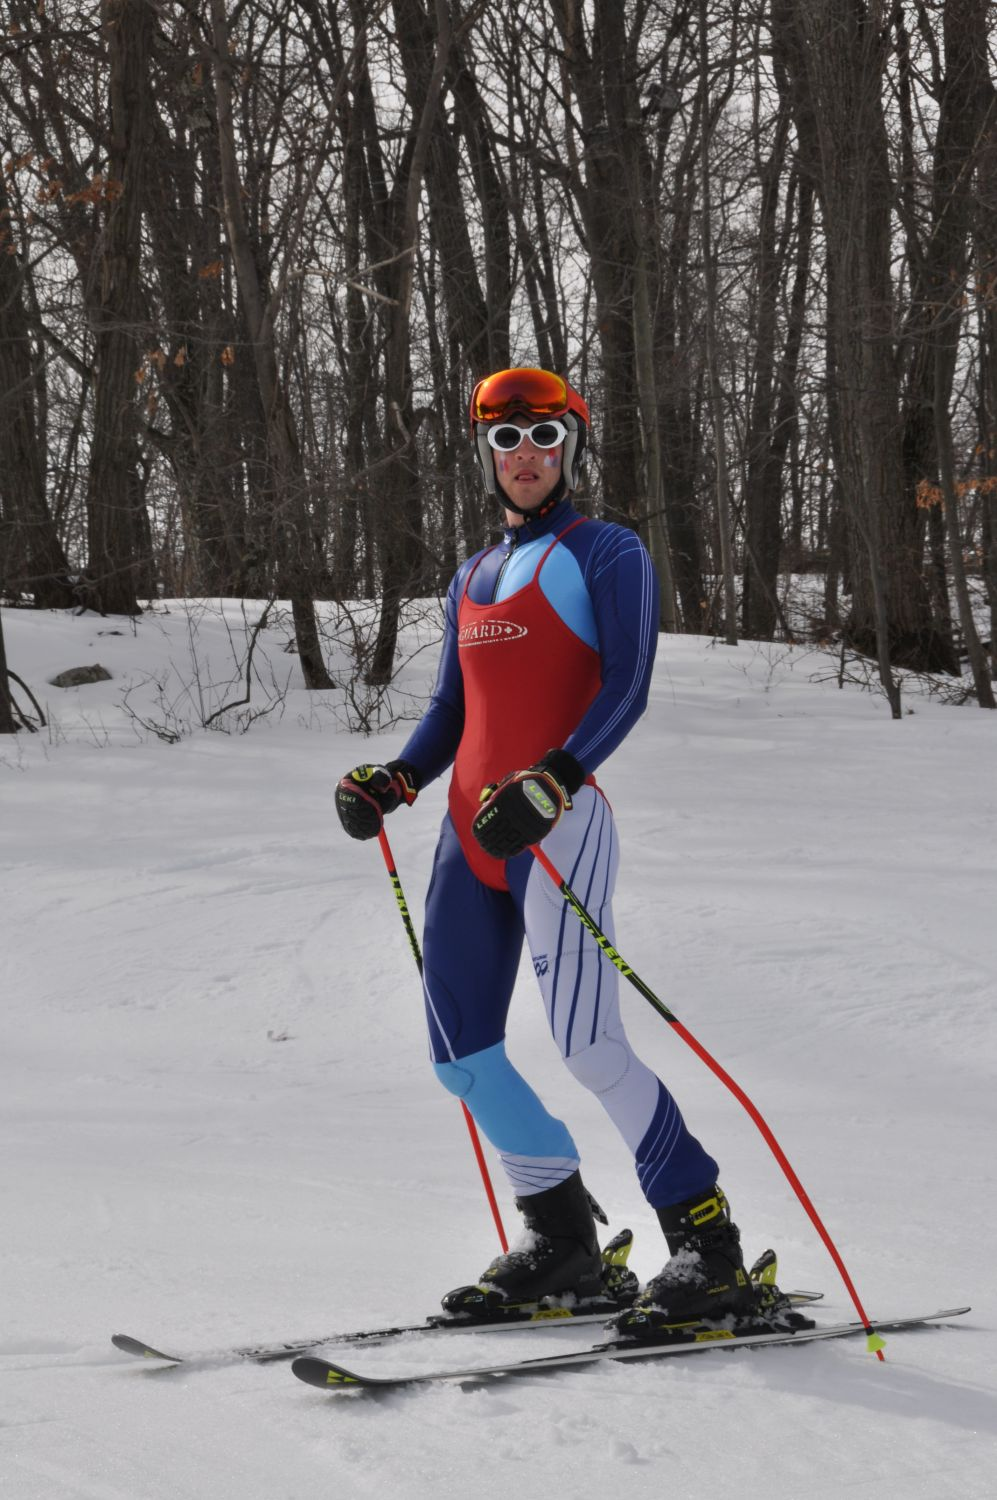 Is that Brenda Muhs at 2019 Petro GS ?